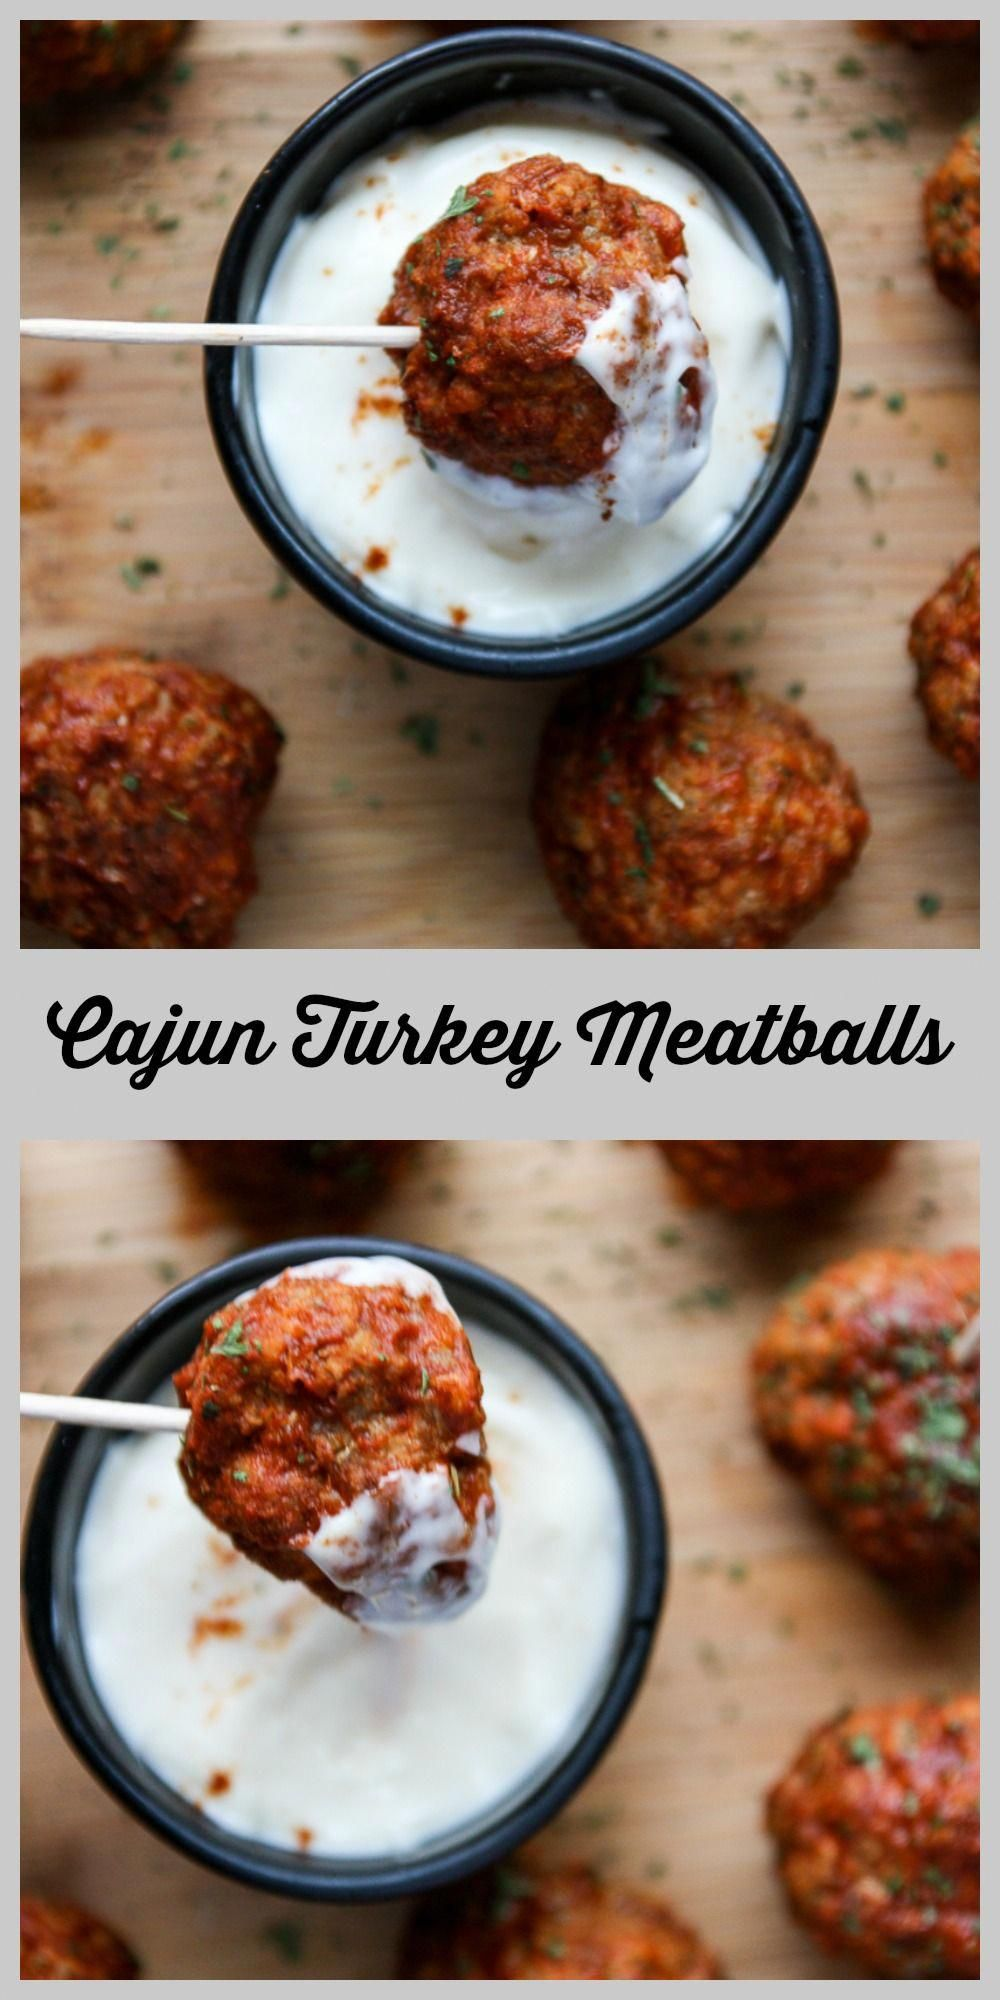 Cajun Turkey Meatballs - Party Meatballs | The Food Blog